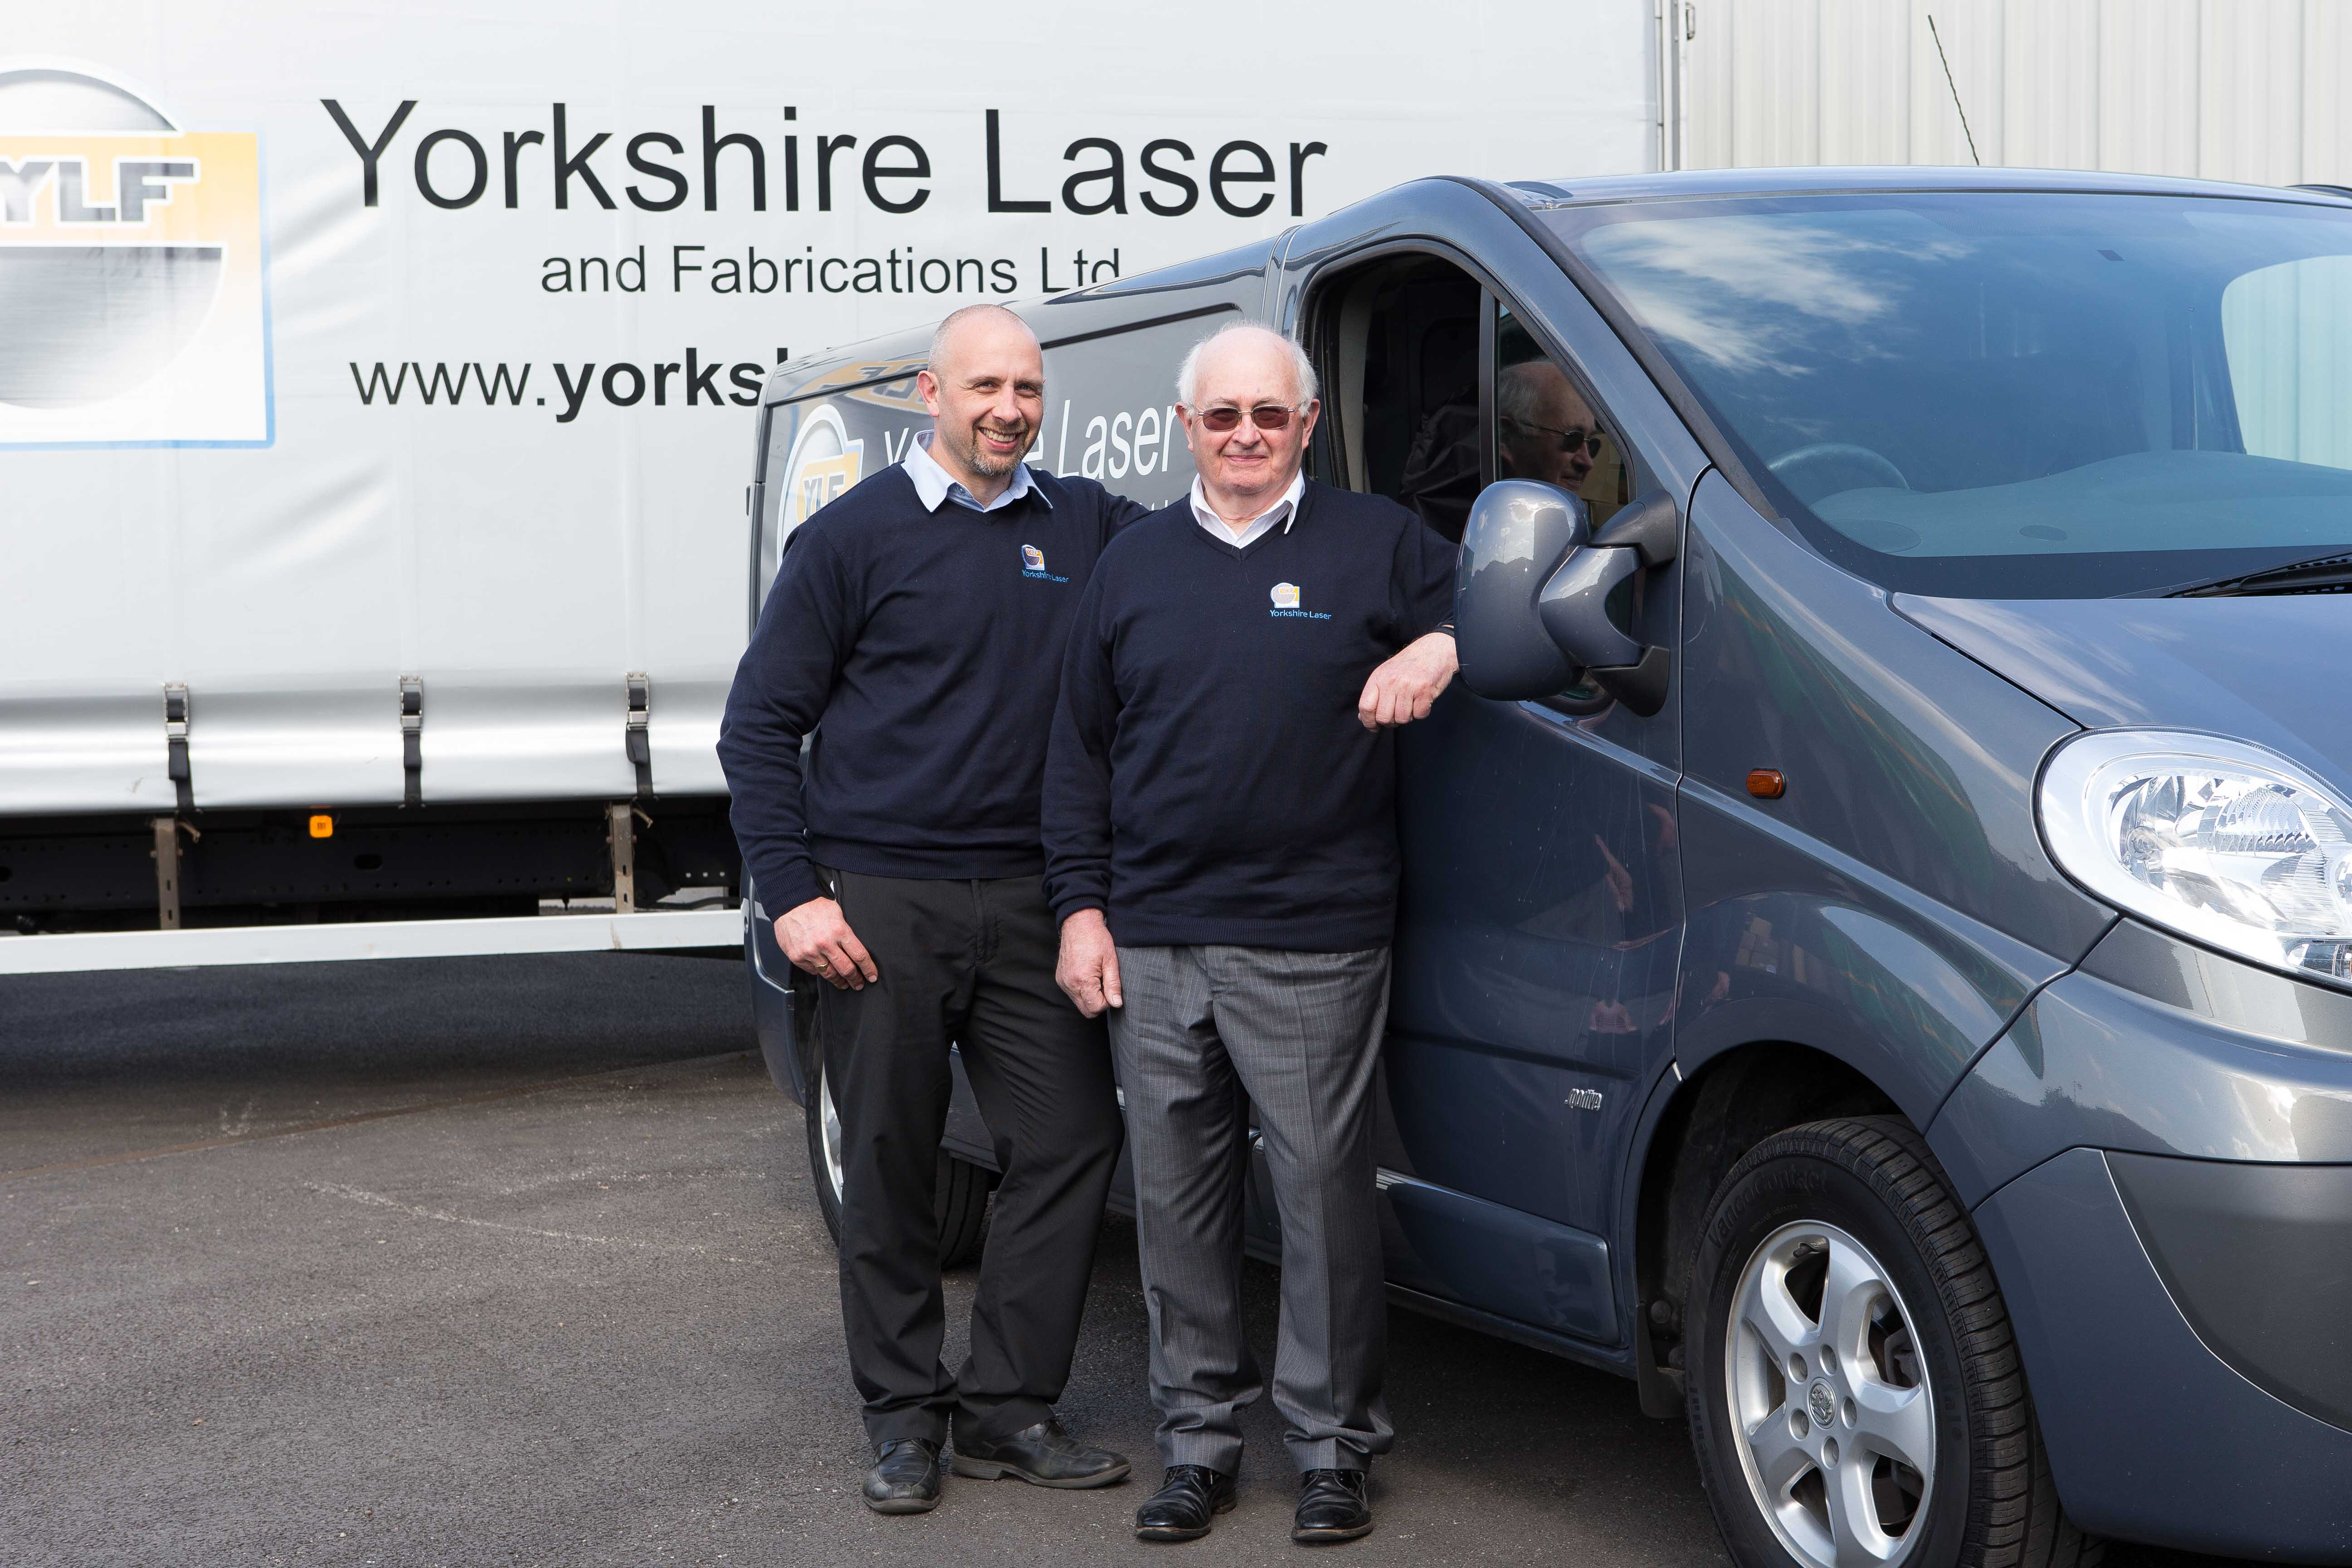 High Quality Laser Cutting Company Yorkshire Laser